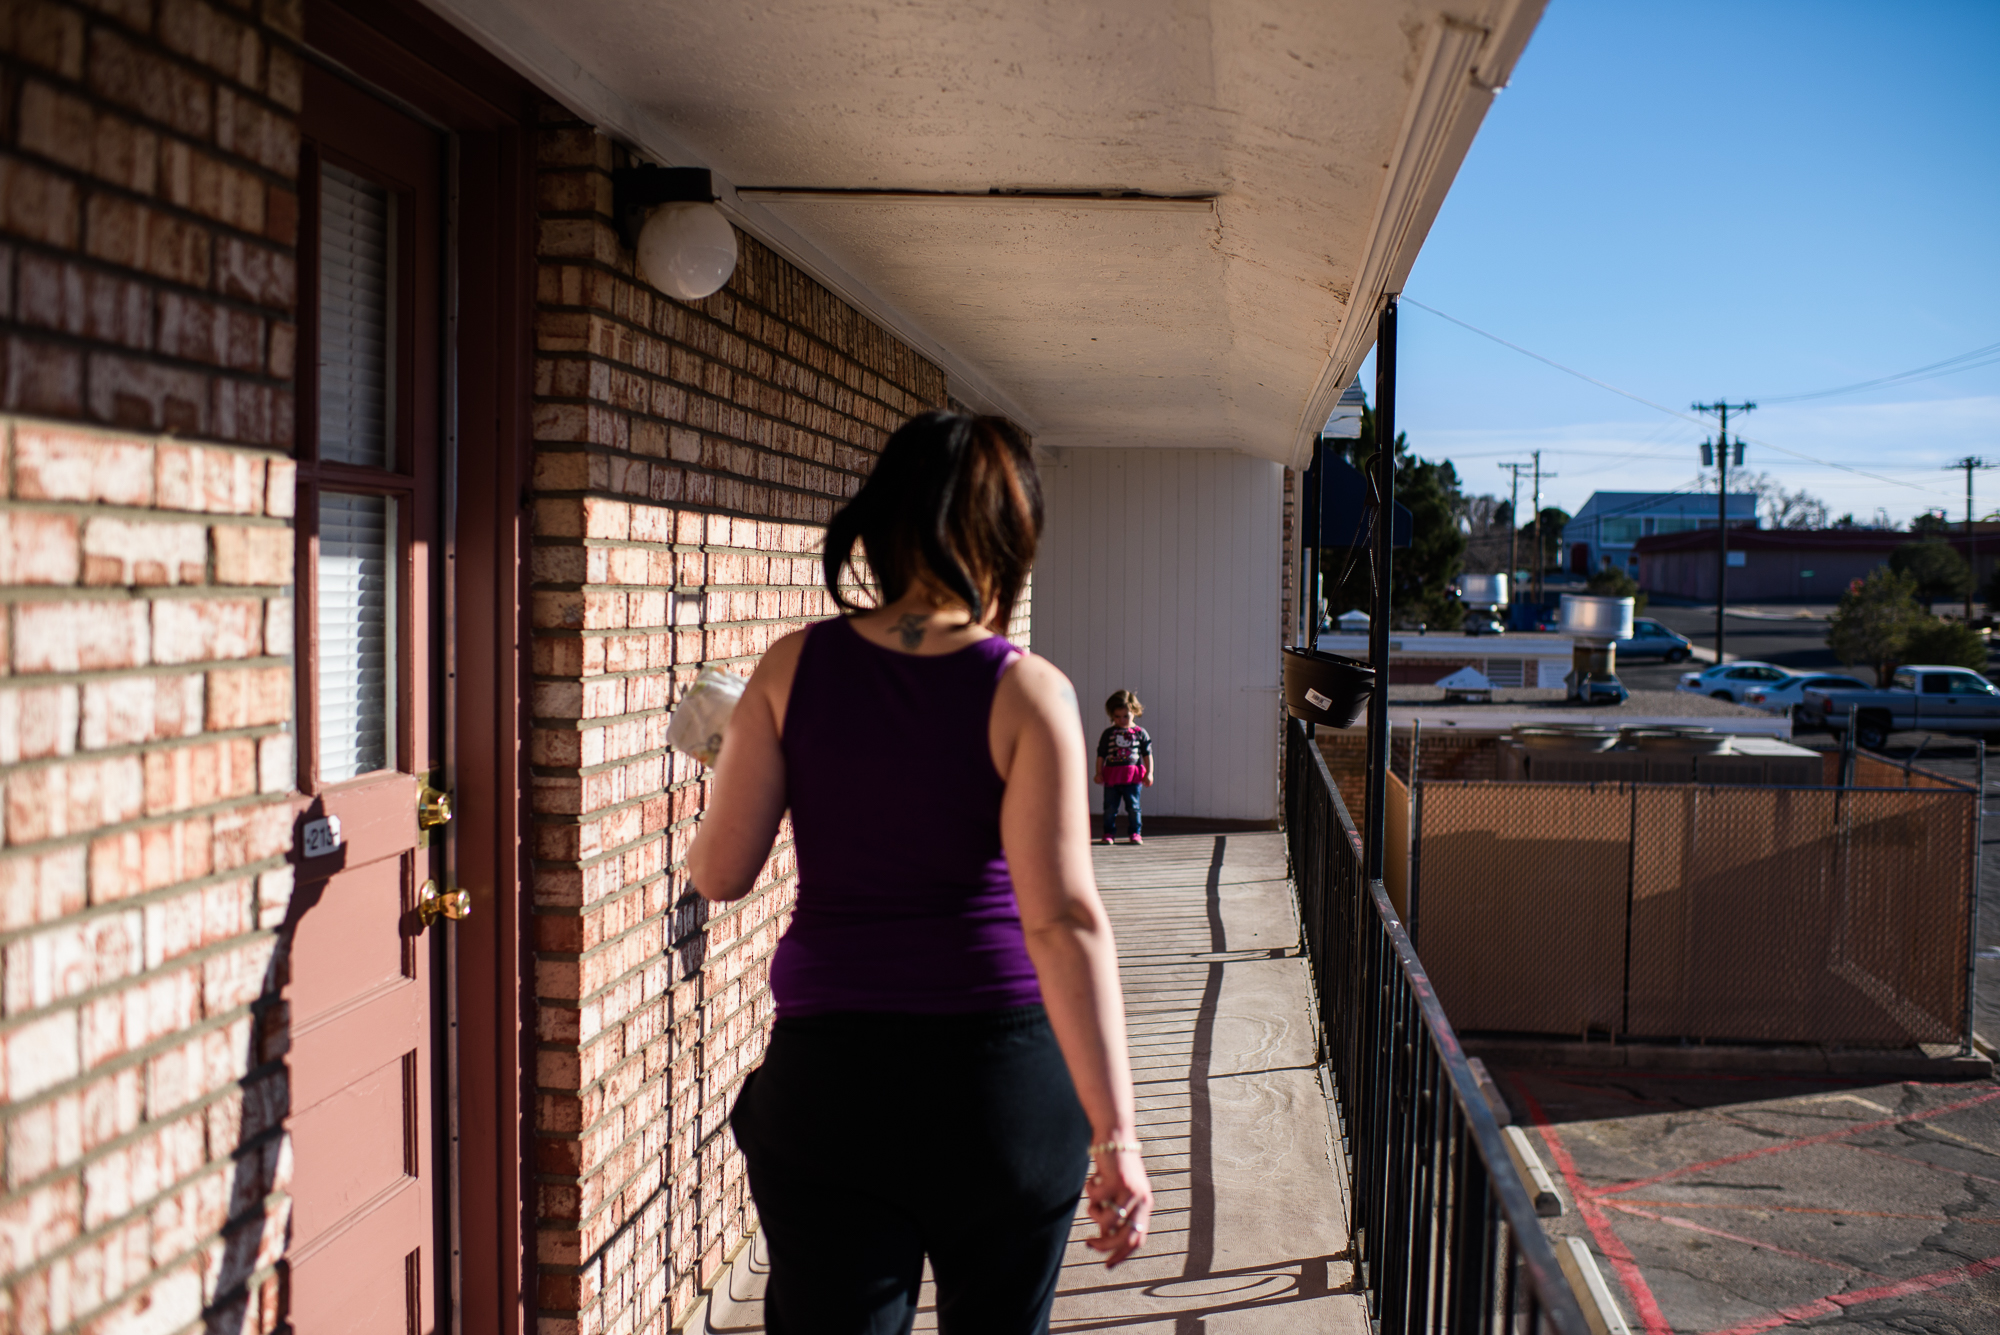 Leticia, age 2, waits for Alysia, age 20, at the end of the corridor, as Alysia walks towards her at their apartment complex.